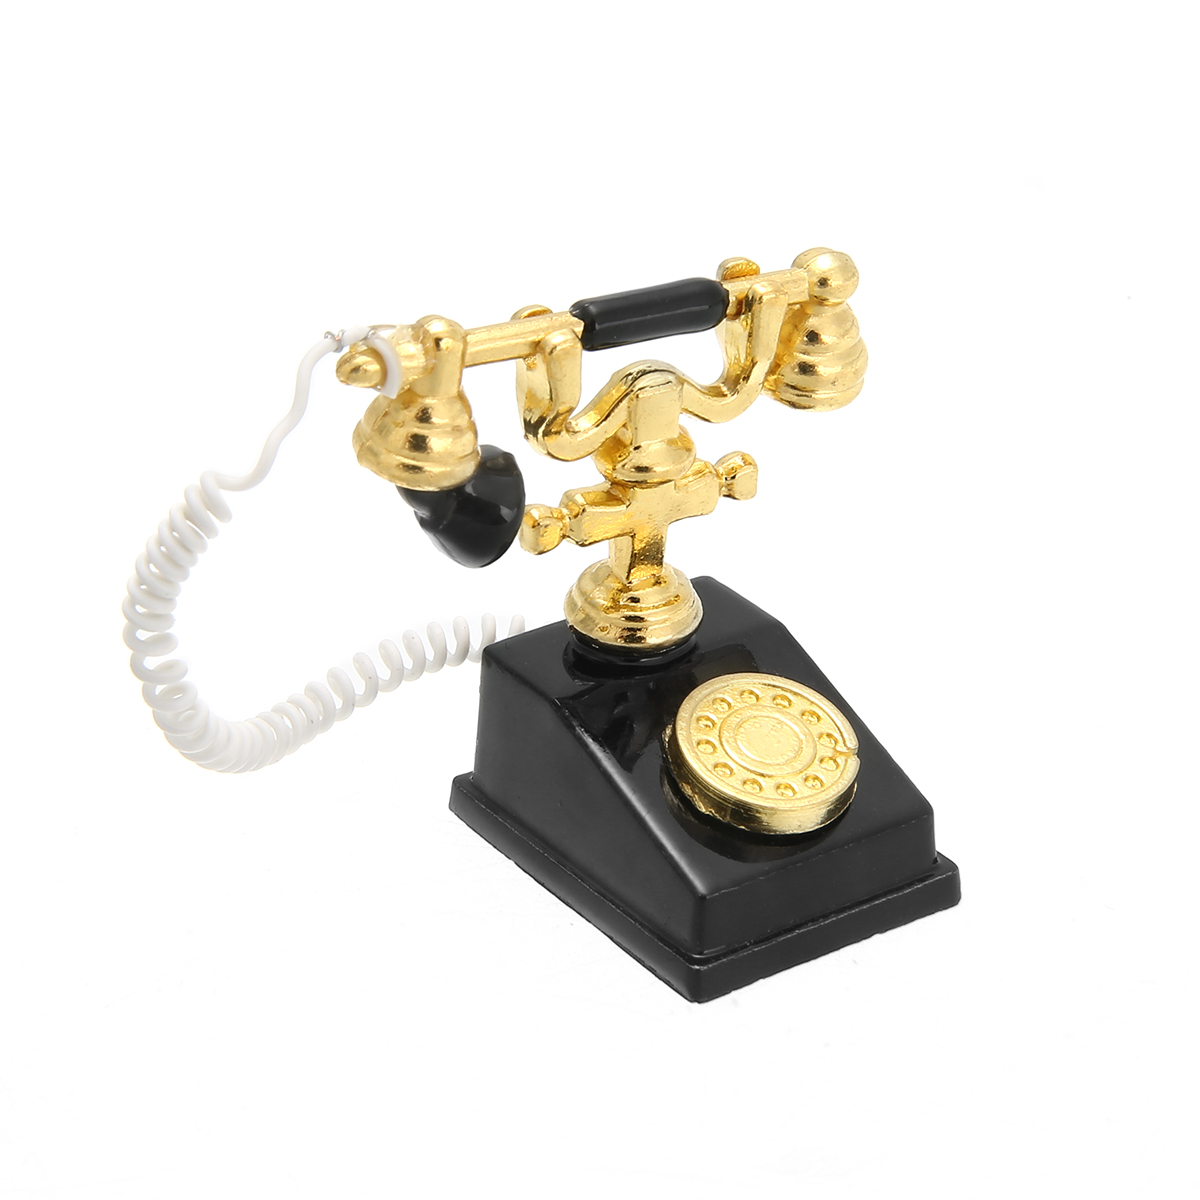 1pcs Retro Metal Phone Telephone For 1:12 Scale Dollhouse Miniature Accessories Decor Miniature Retro Phone Vintage Telephone